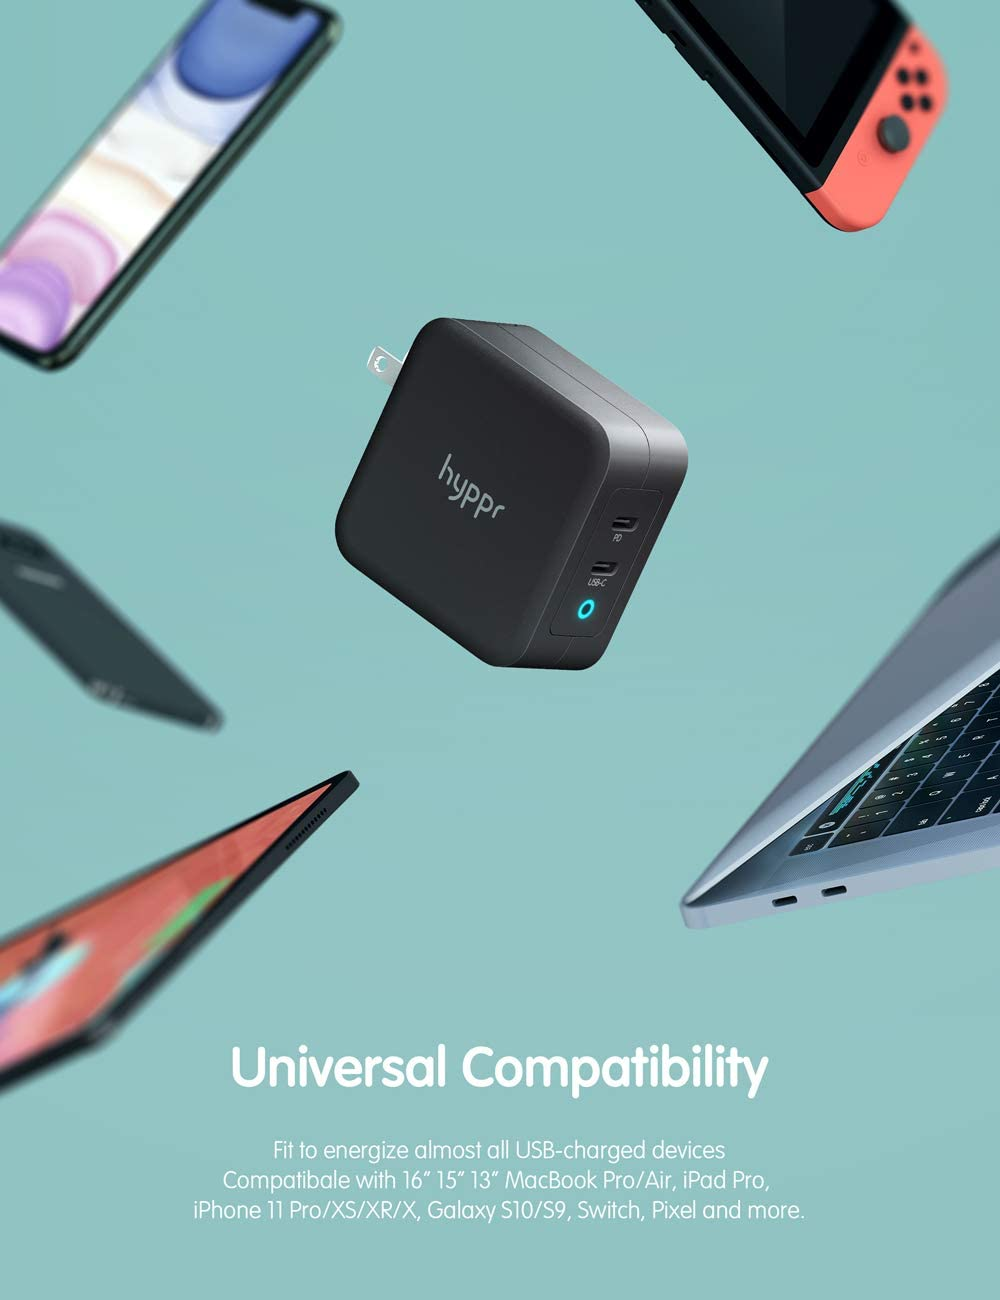 hyppr 100W USB C Charger Macbook Fast Type C Wall Charger with GaN Tech /& PD 3.0 Foldable Dual Port Tablet Adapter PD Charger Compatible with MacBook Pro Air iPad Pixel iPhone 11//XS//XR Galaxy /& More